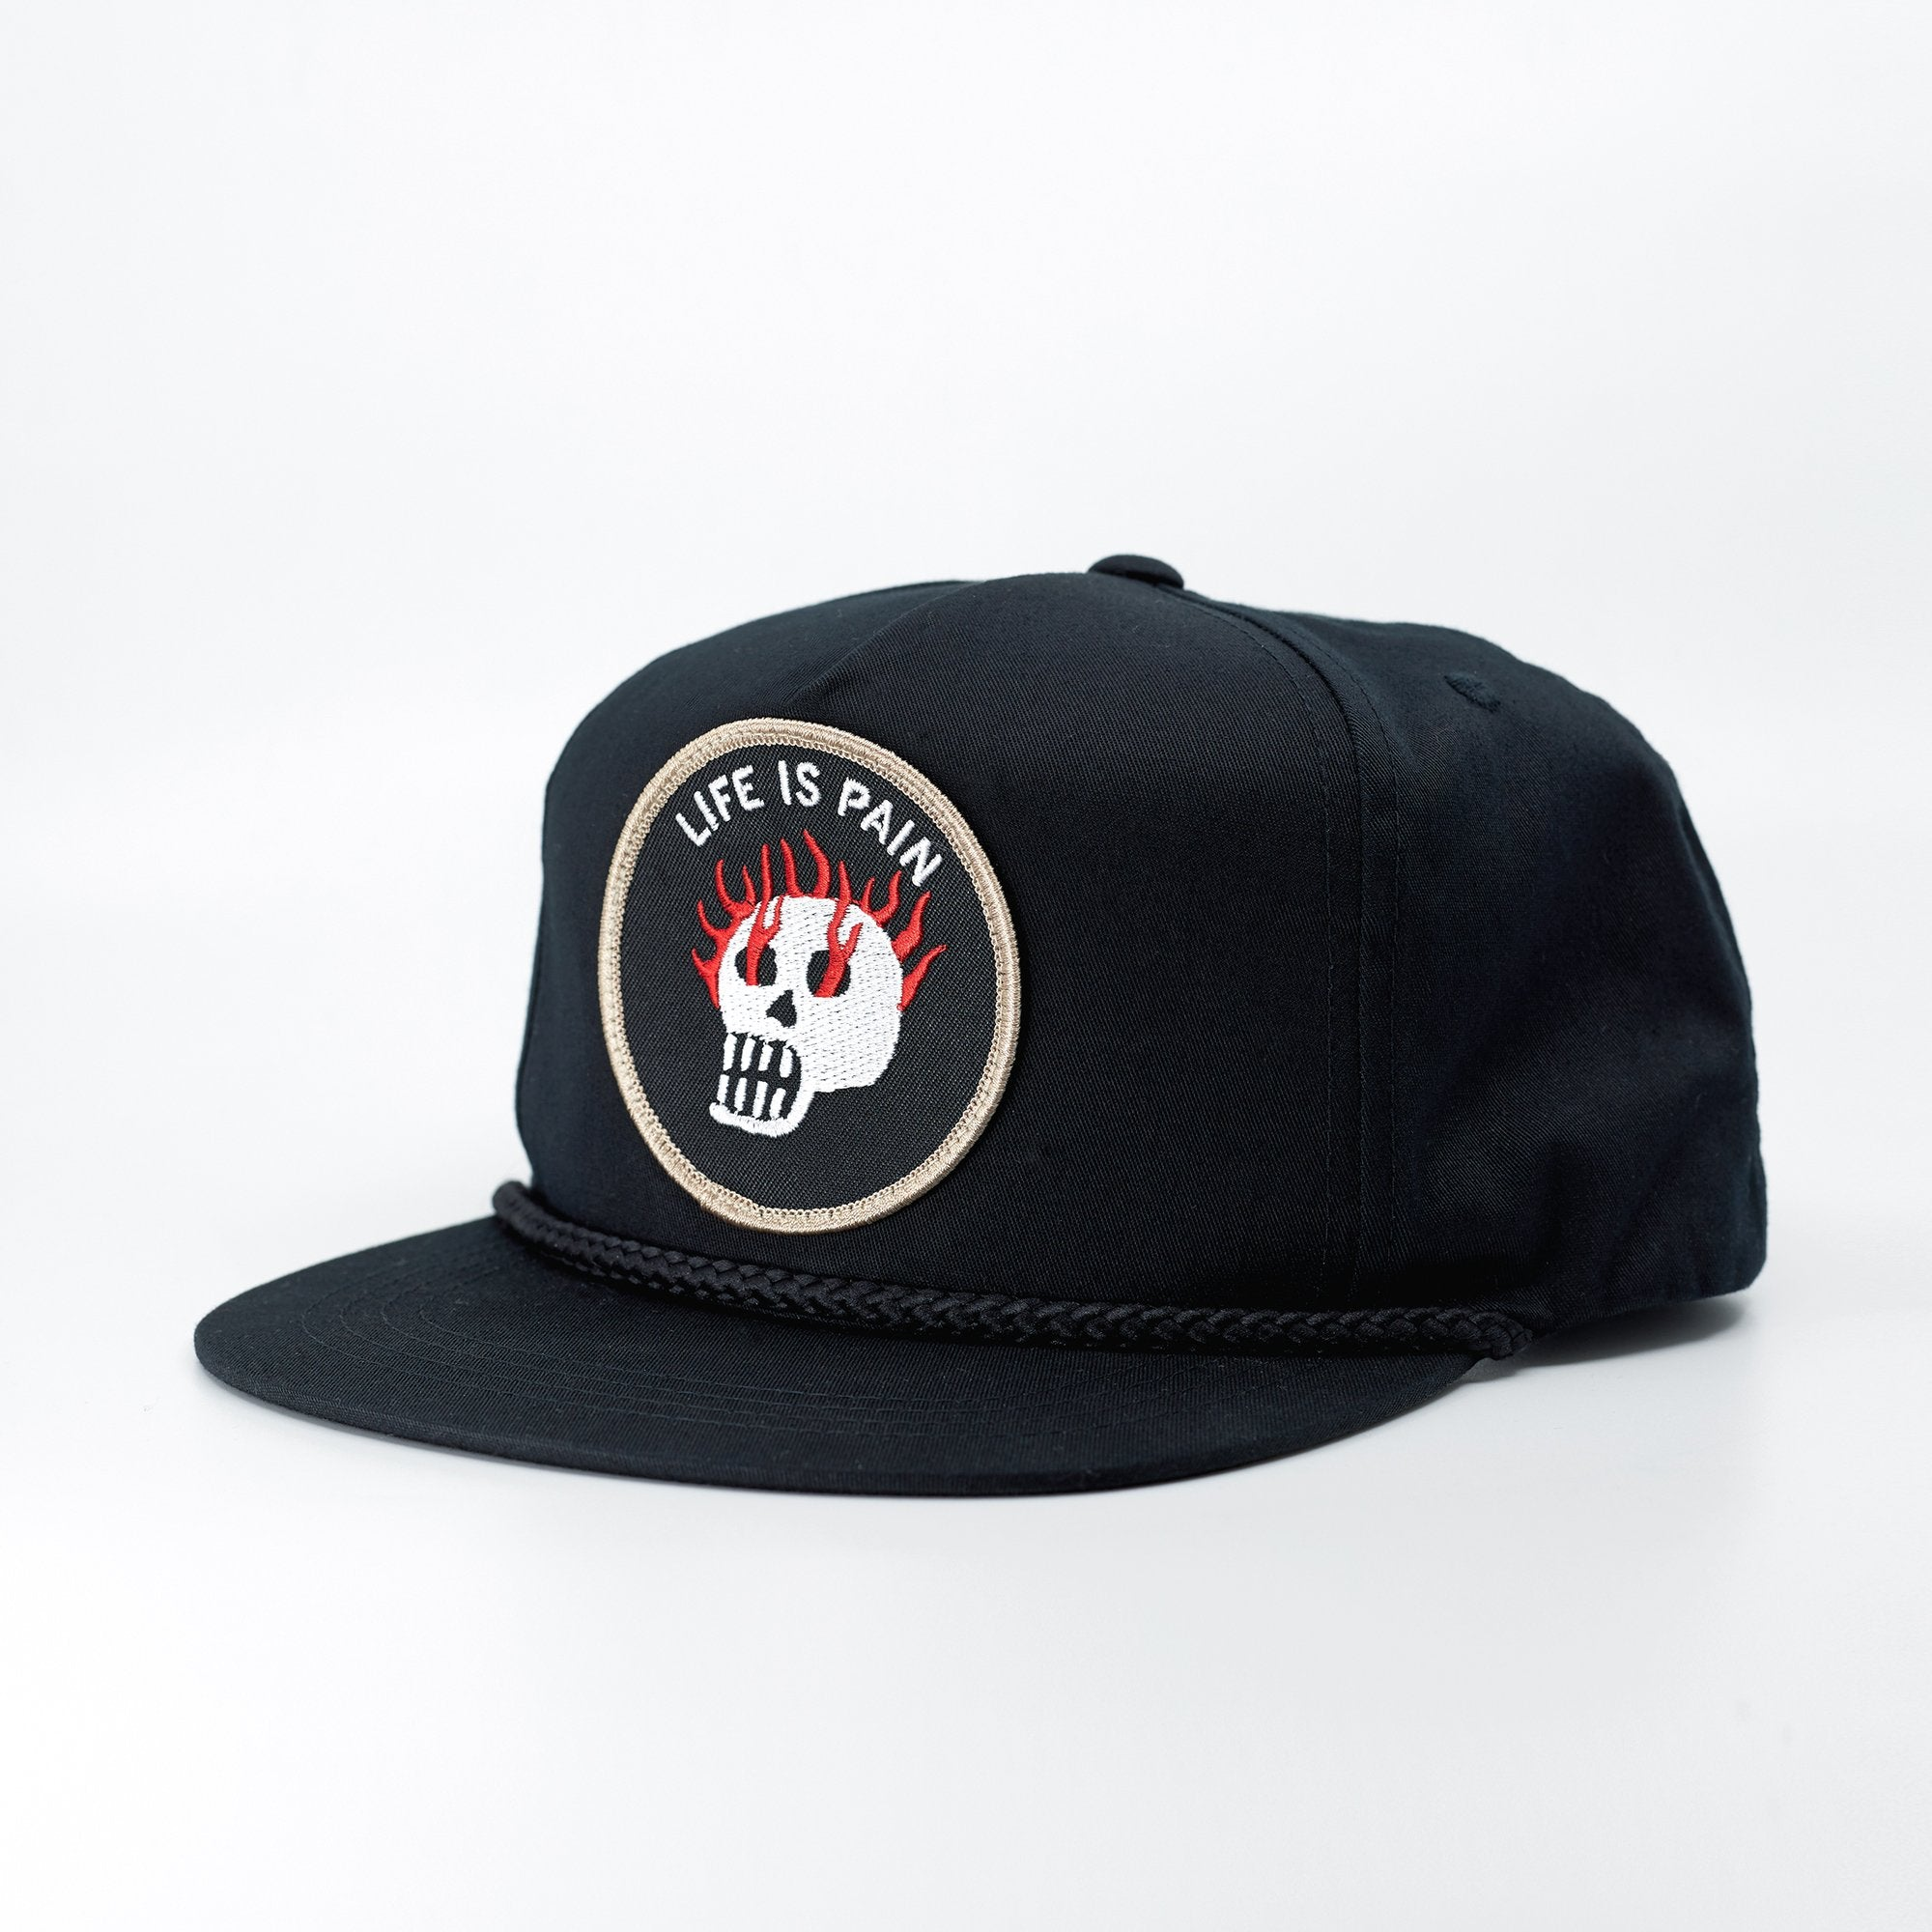 Life Is Pain Hat - Black